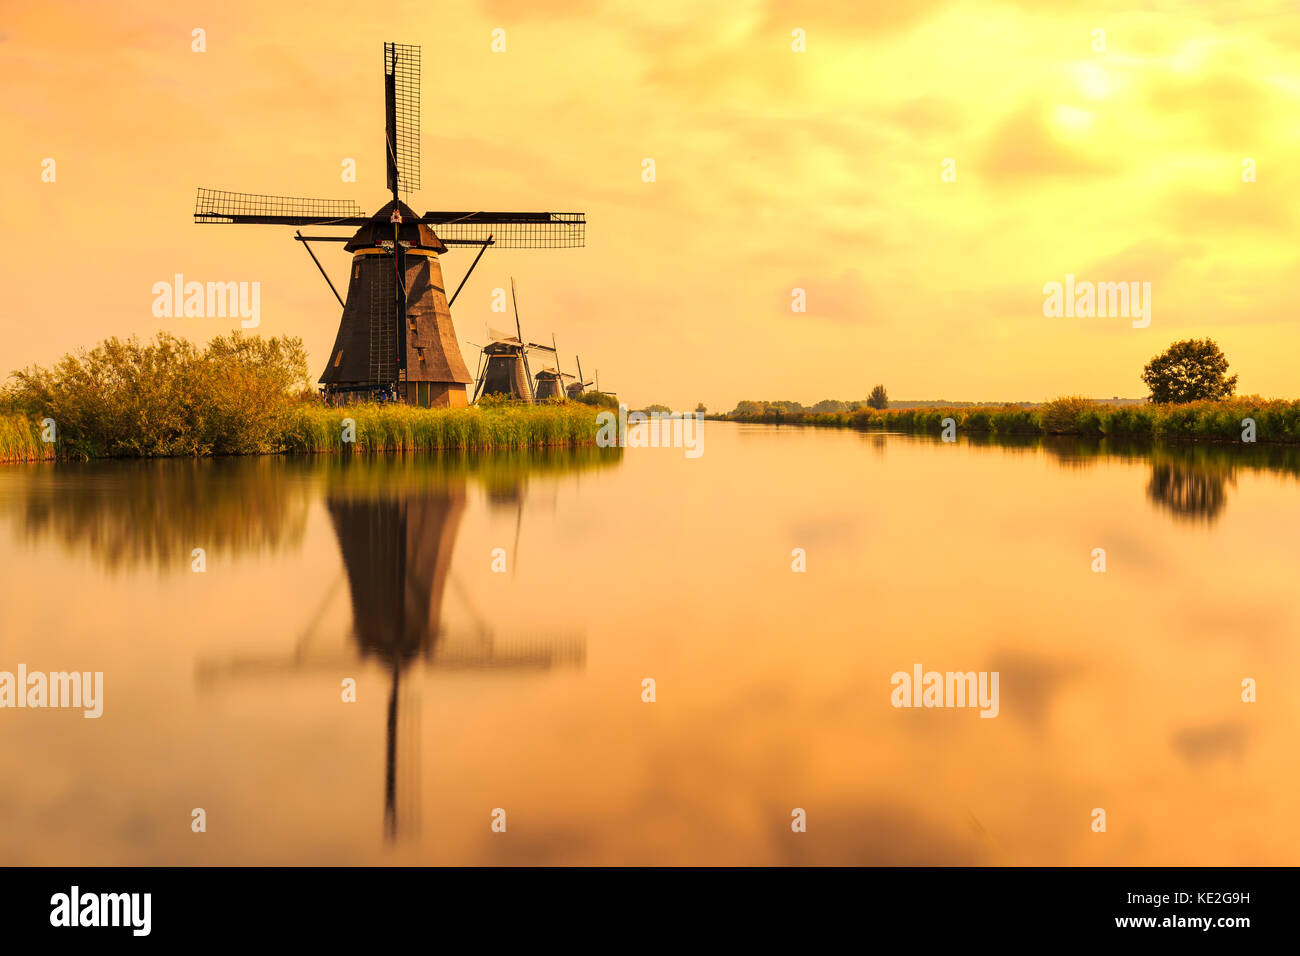 Traditional Dutch Windmills Kinderdijk, World Unesco heritage, on a sunny day late summer. Reflection visible on - Stock Image